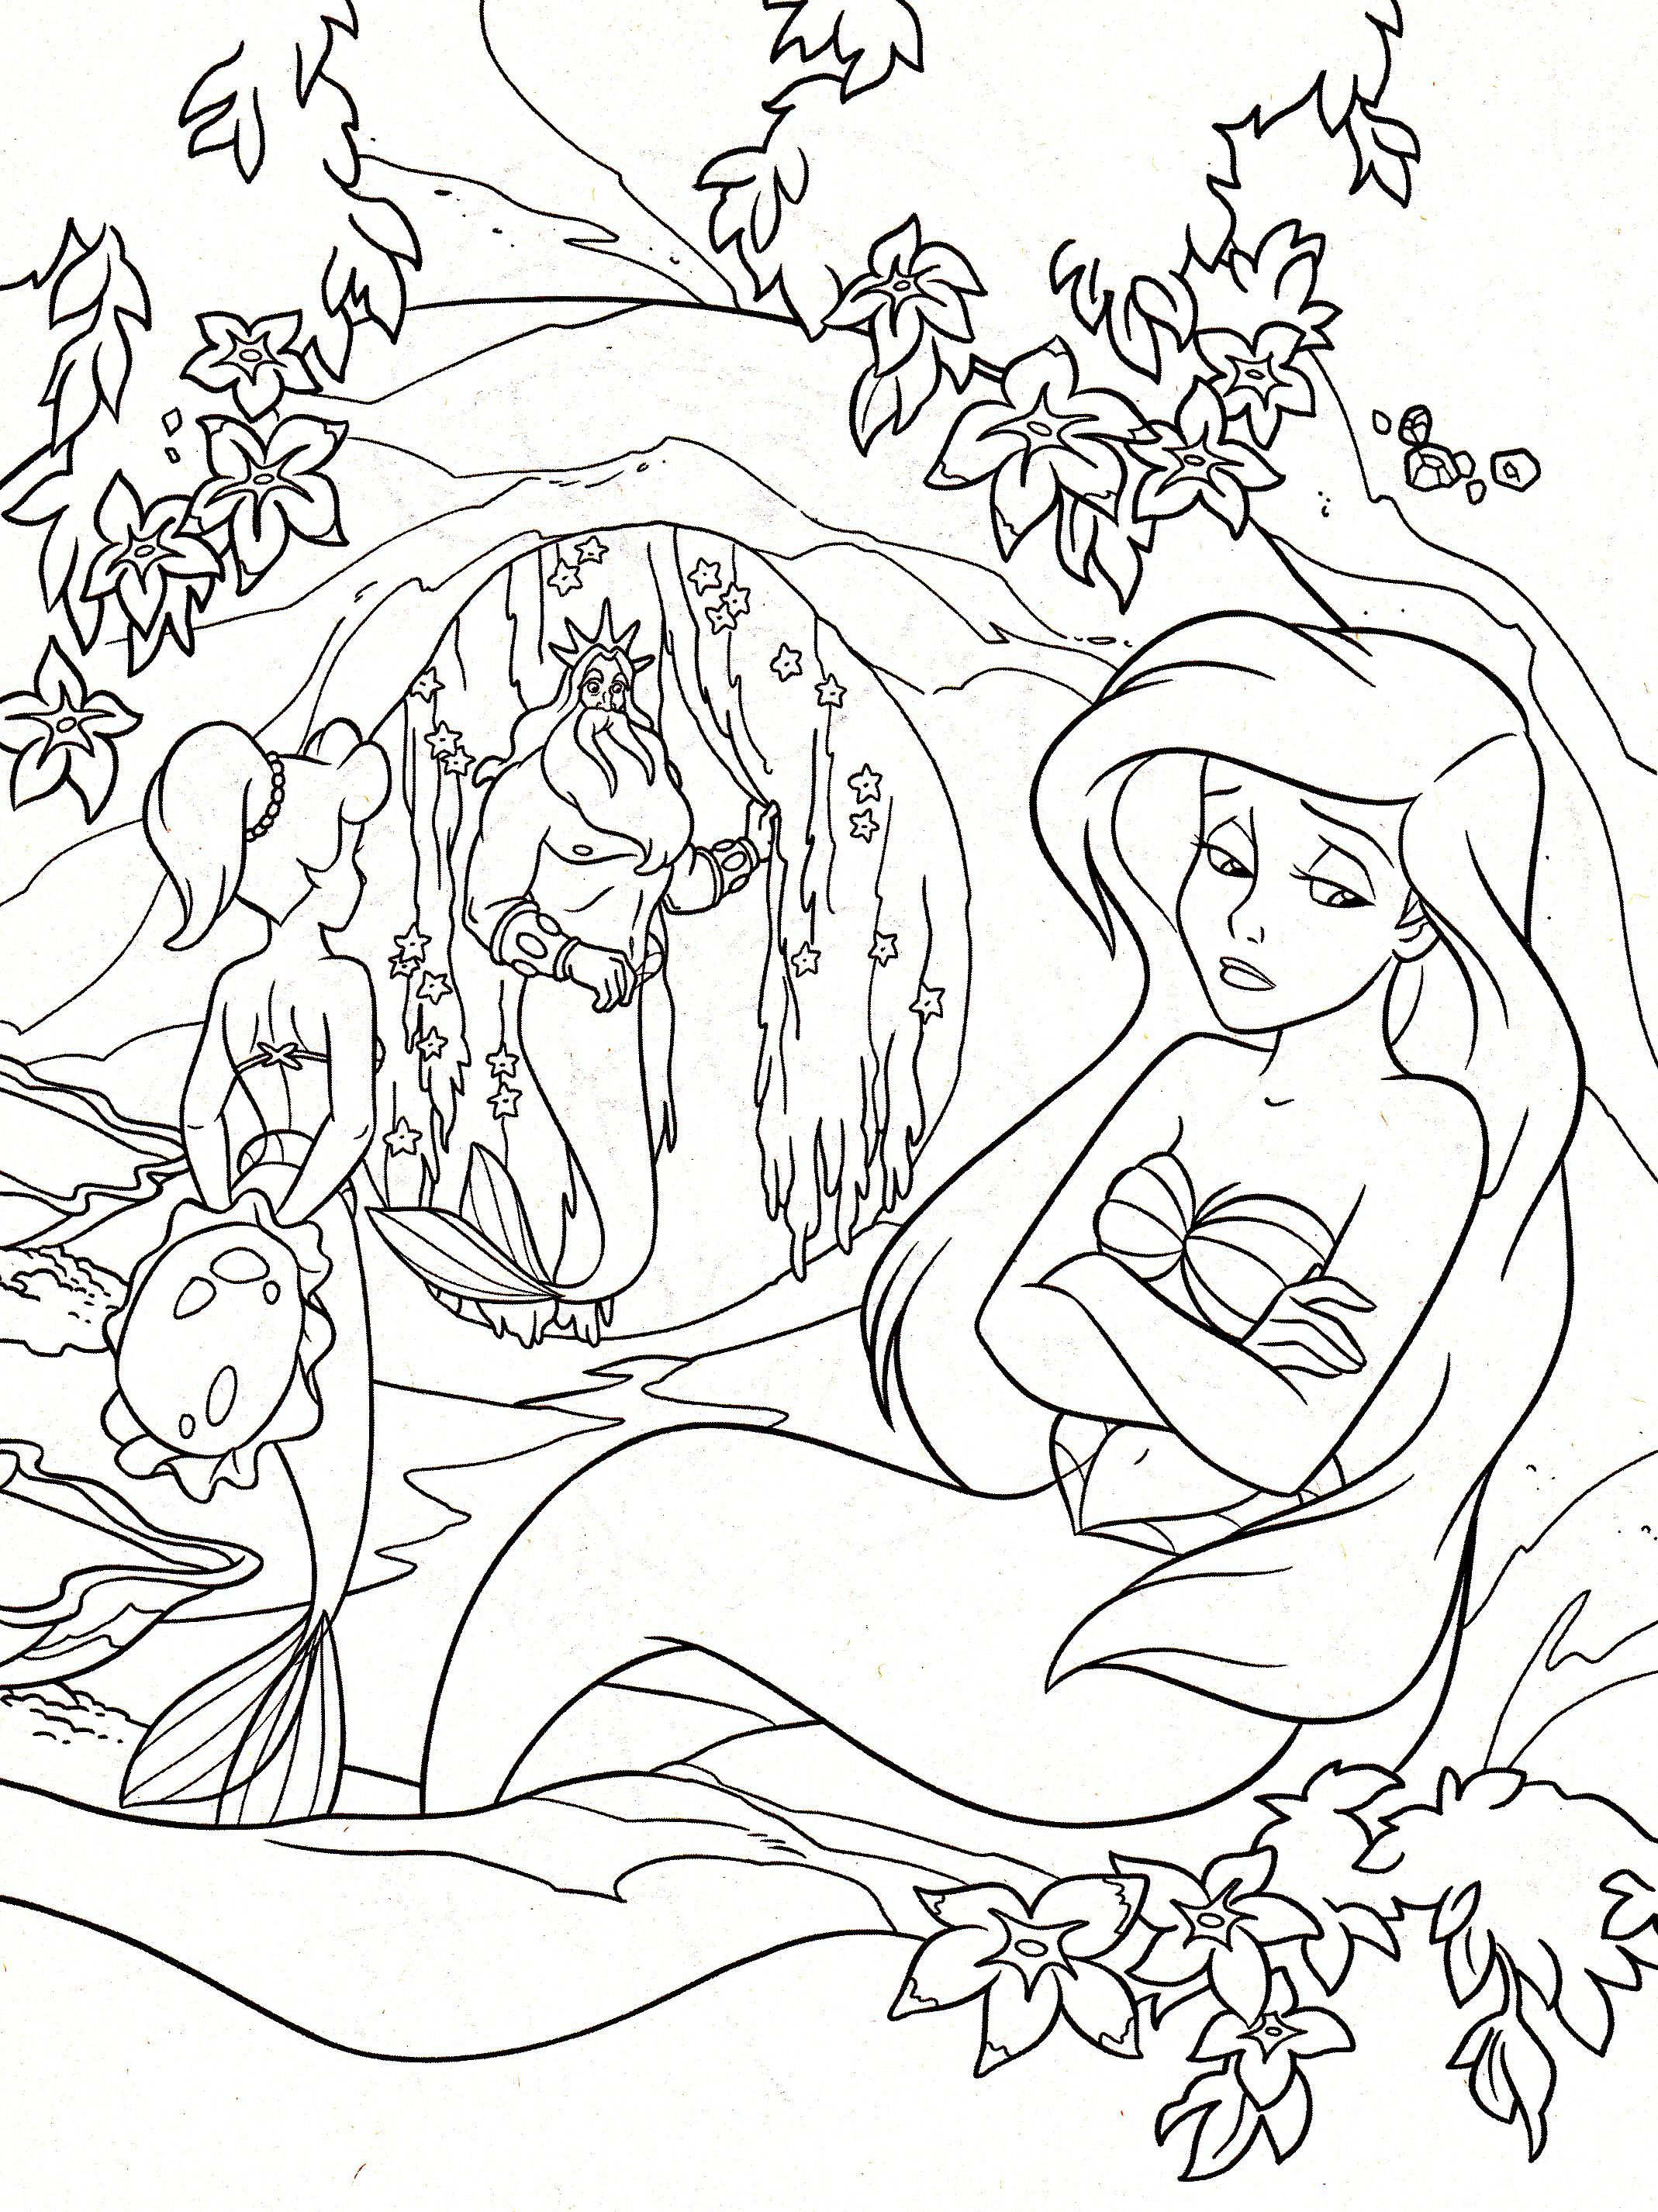 Rainbow Rangers Coloring Pages Di 2020